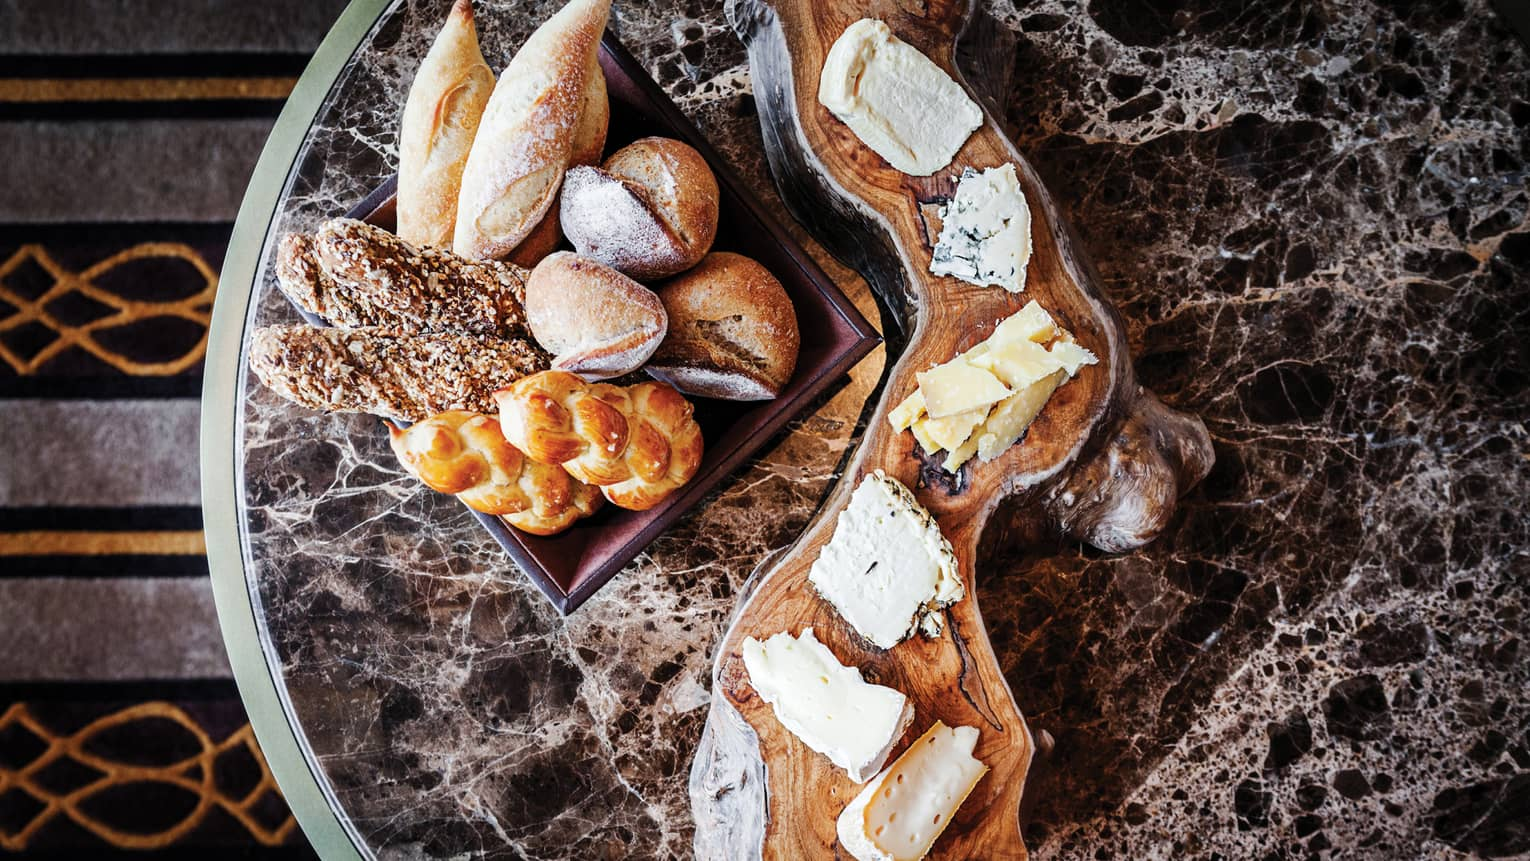 Aerial view of rustic wood platter with artisanal cheeses, breads